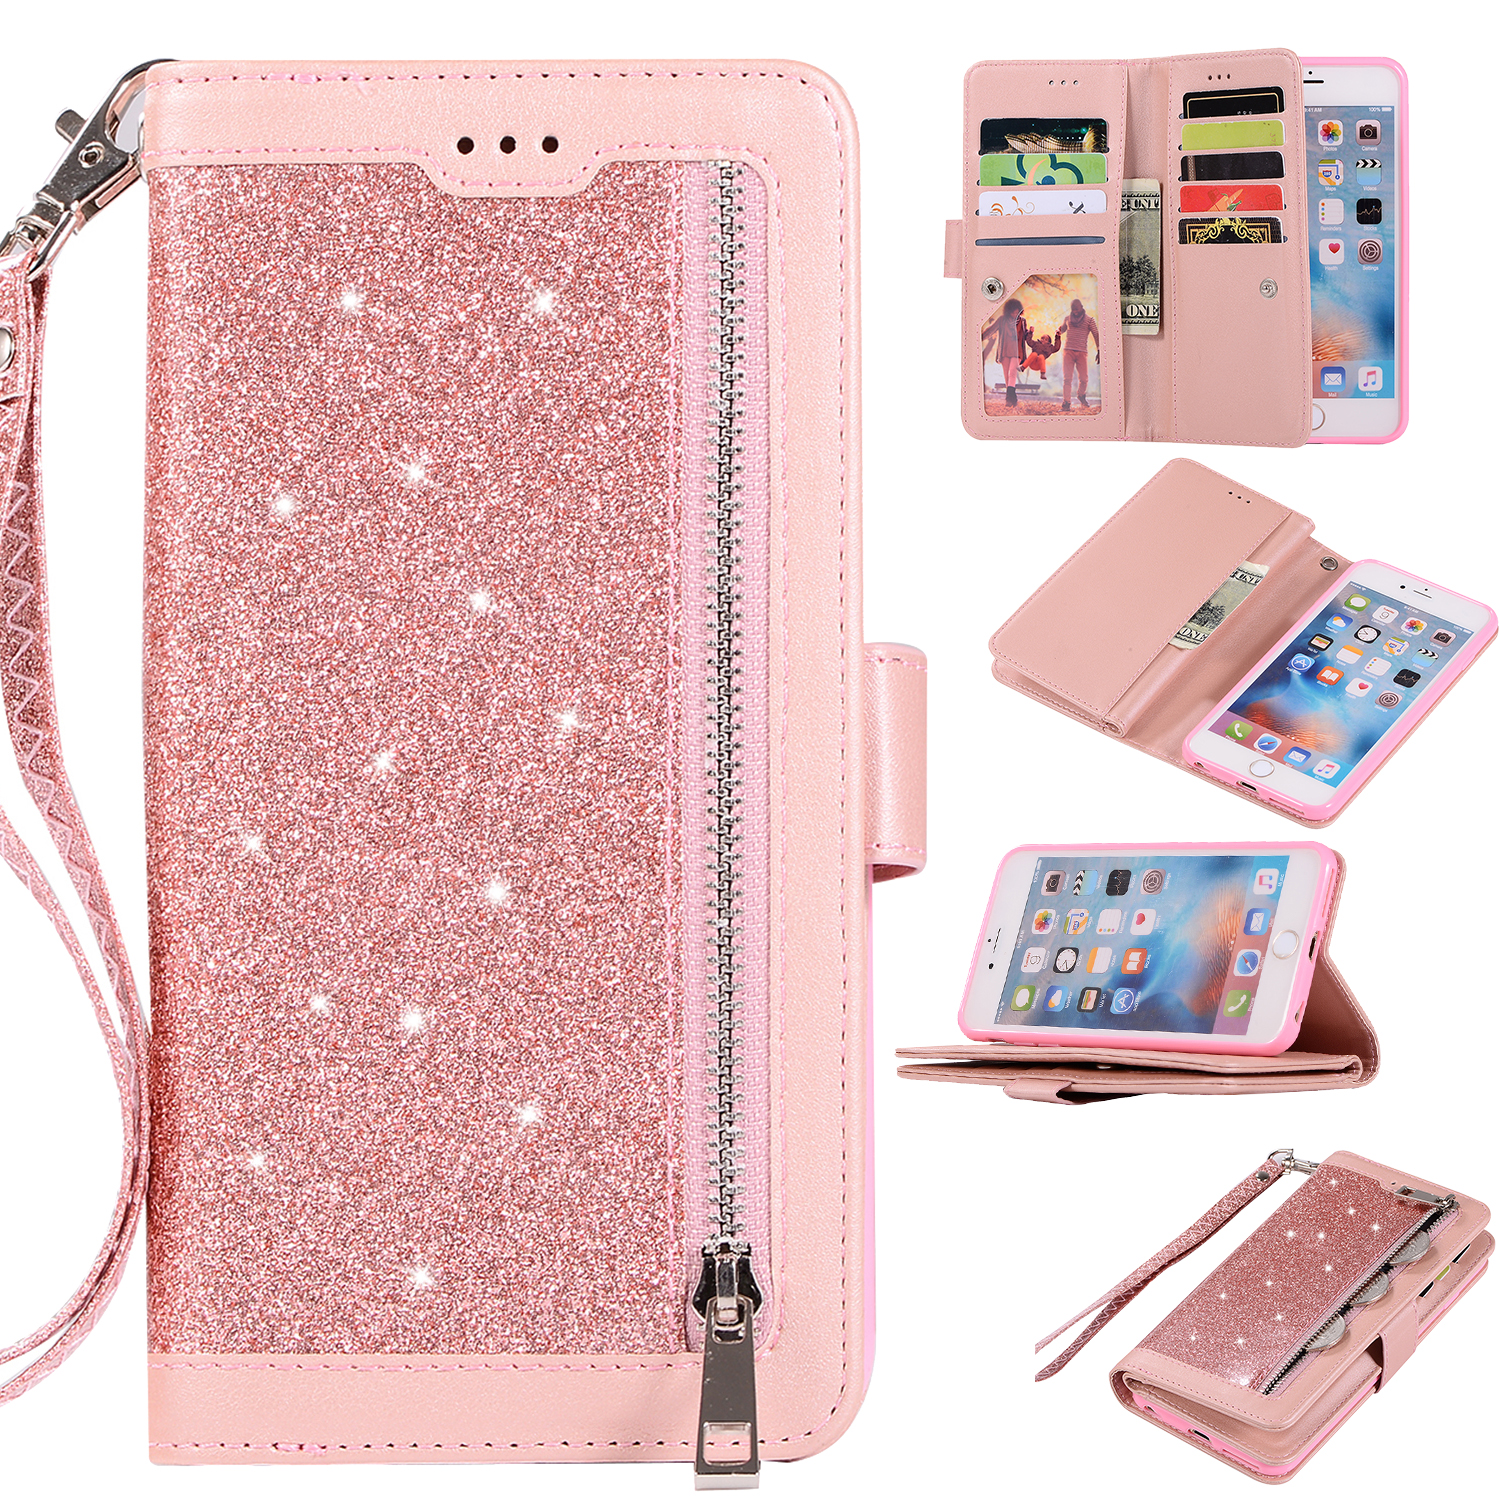 premium selection 9efab 458b1 Zipper Wallet Case for iPhone 6S iPhone 6 4.7-inch, Allytech Bling Glitter  Leather Case with 9 Credit Card Holder Flip Magnetic Closure Stand Cover ...